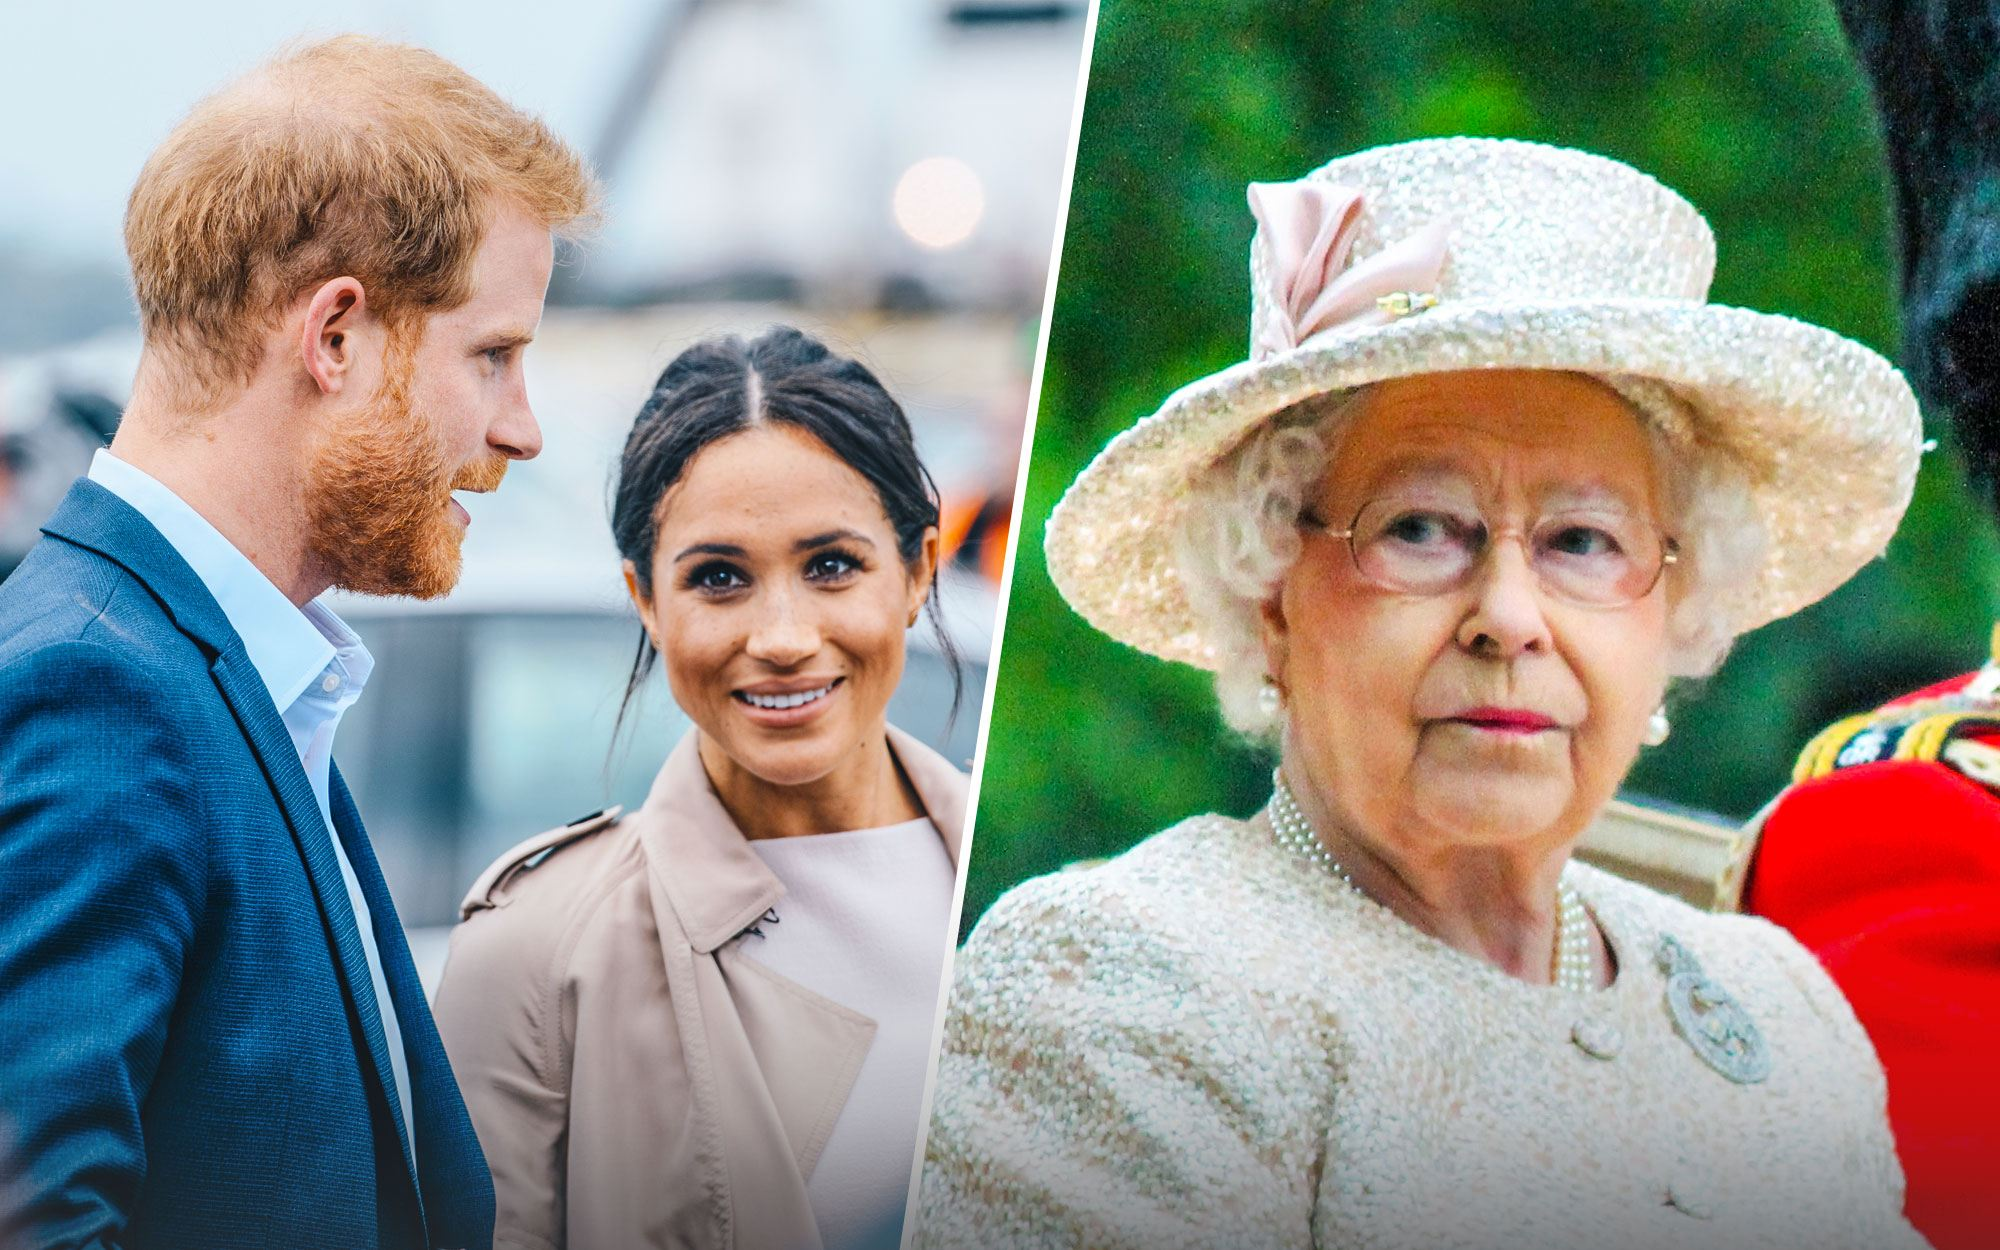 Harry and Meghan Have Officially Been Stripped of Titles, Duties and Royal Source of Income